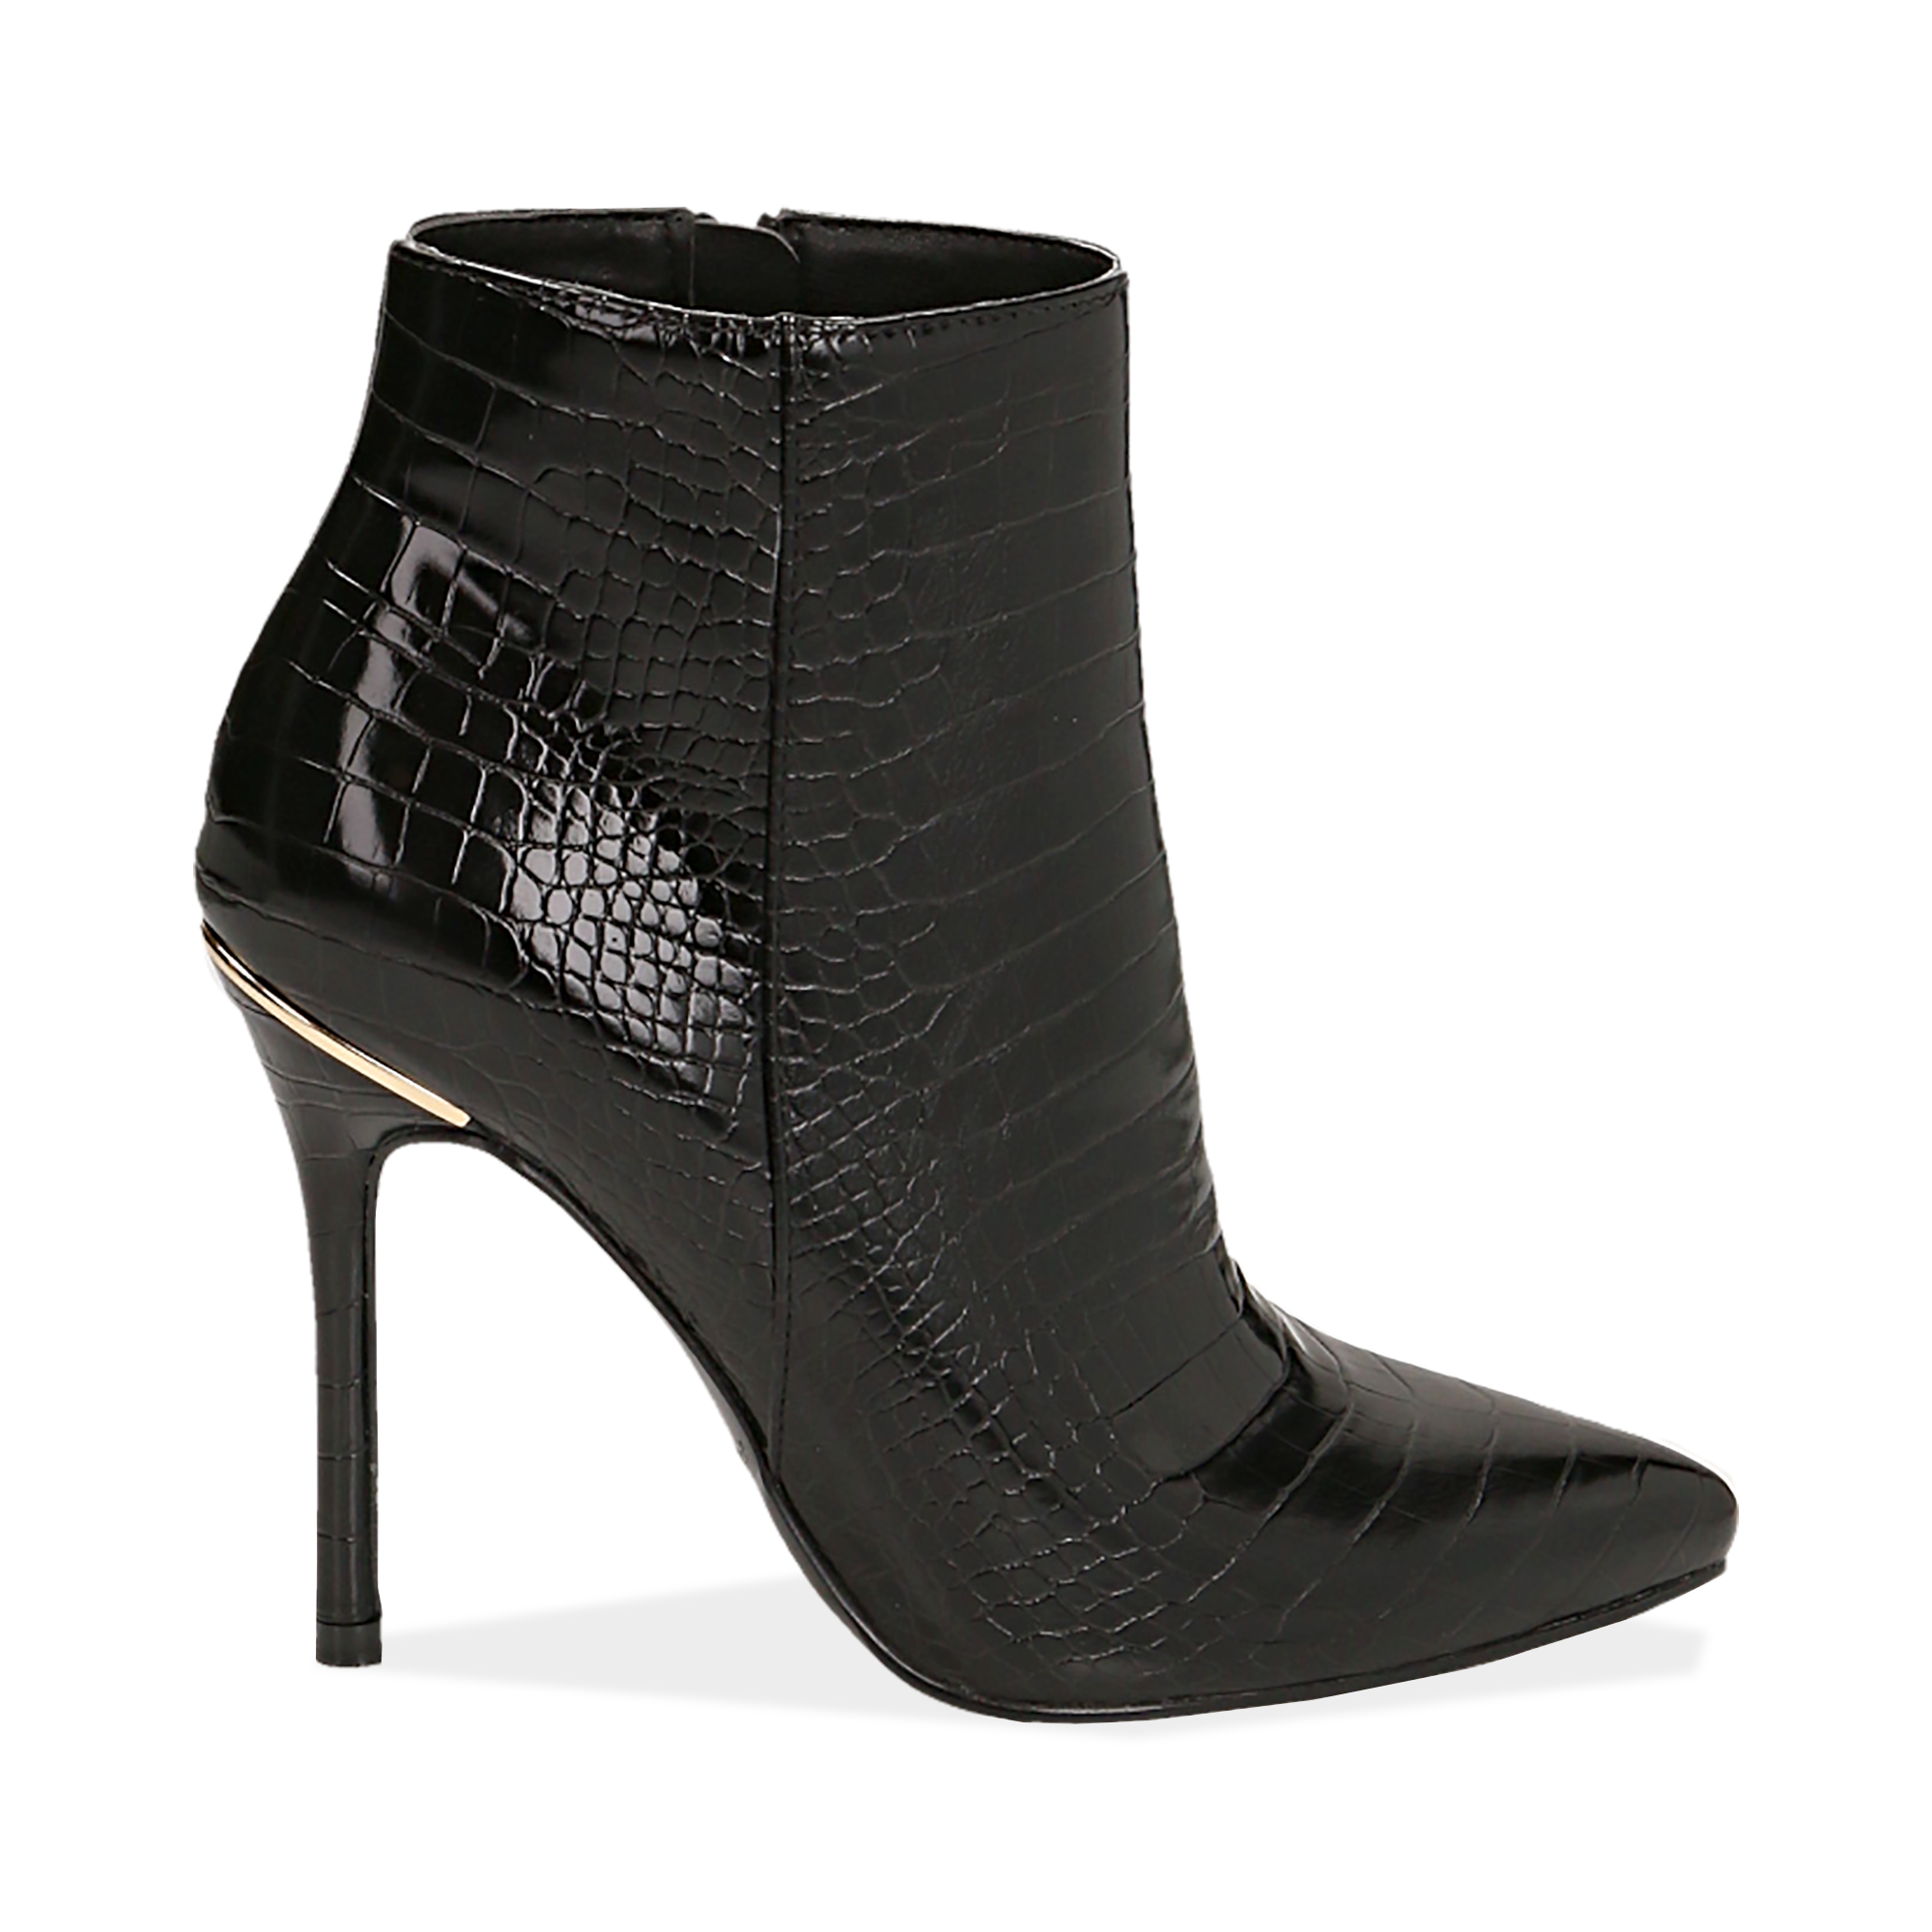 Ankle boots neri stampa cocco, tacco 11 cm